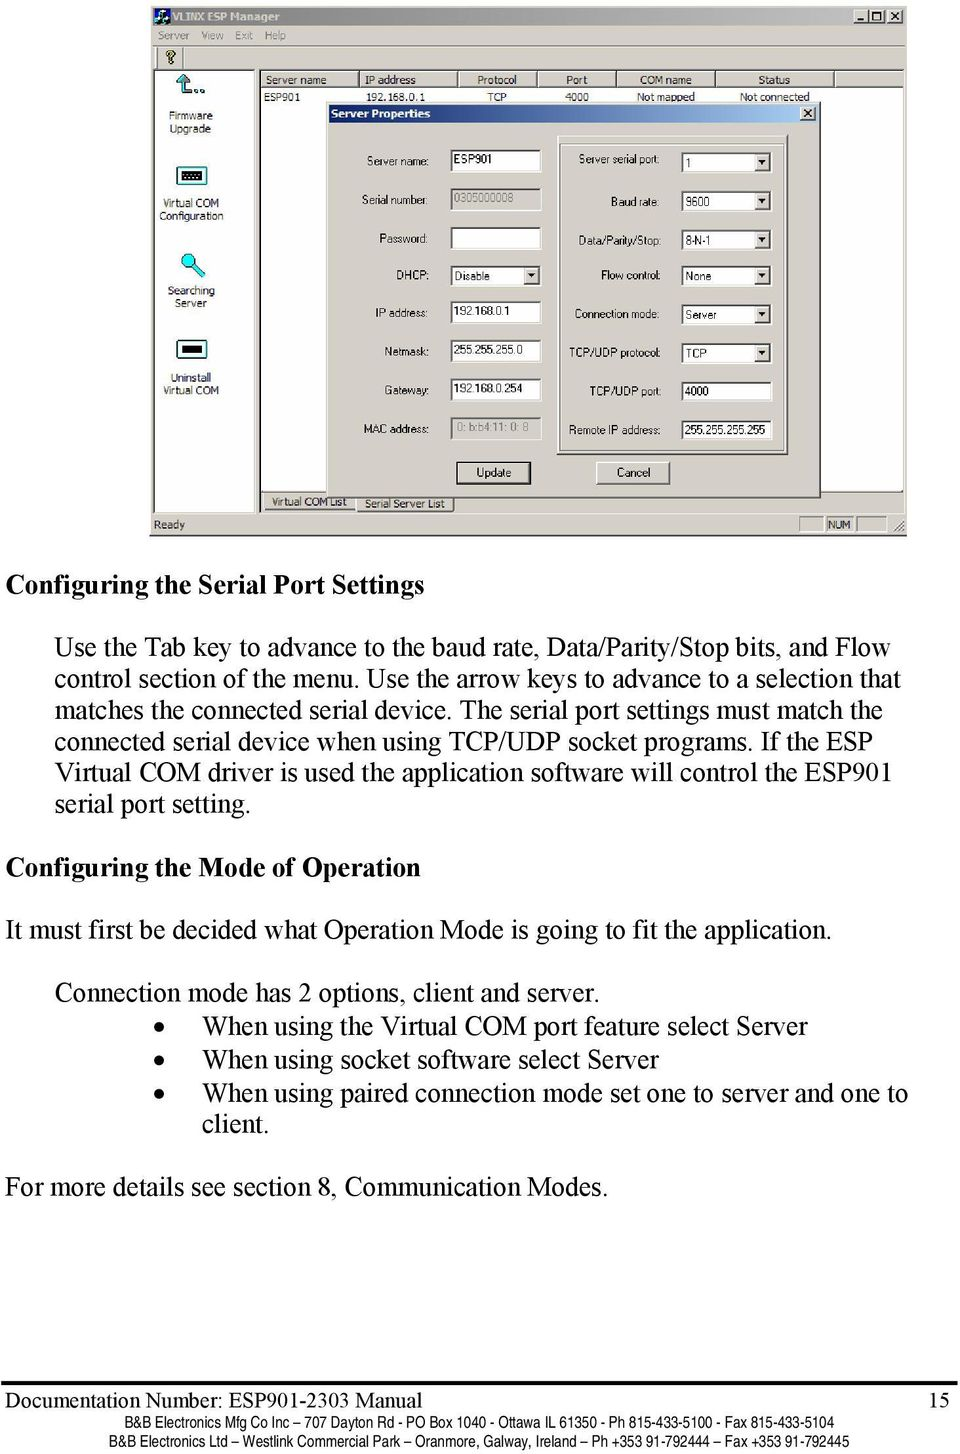 If the ESP Virtual COM driver is used the application software will control the ESP901 serial port setting.